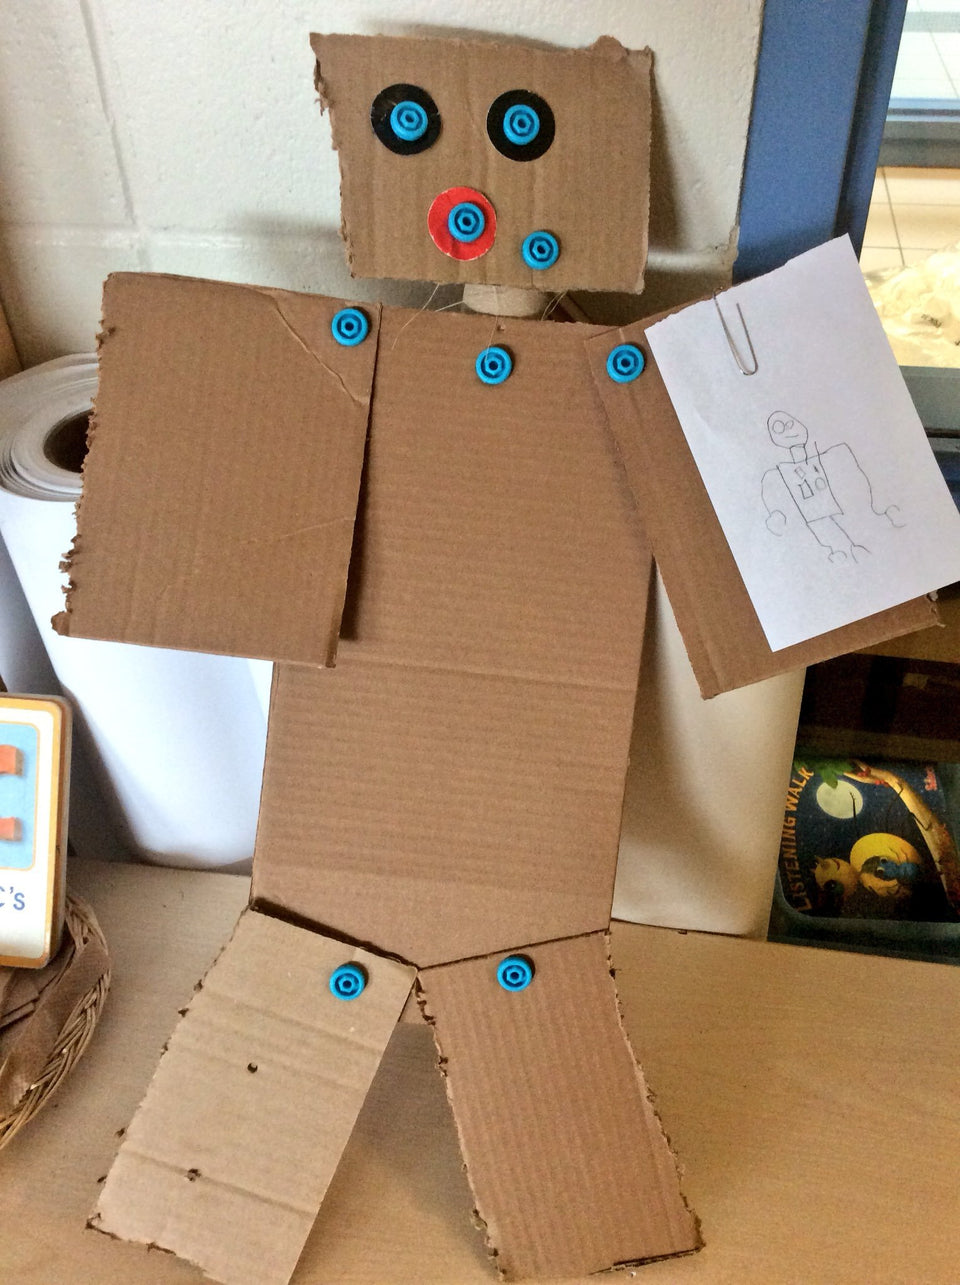 2D Robot with Self Portrait